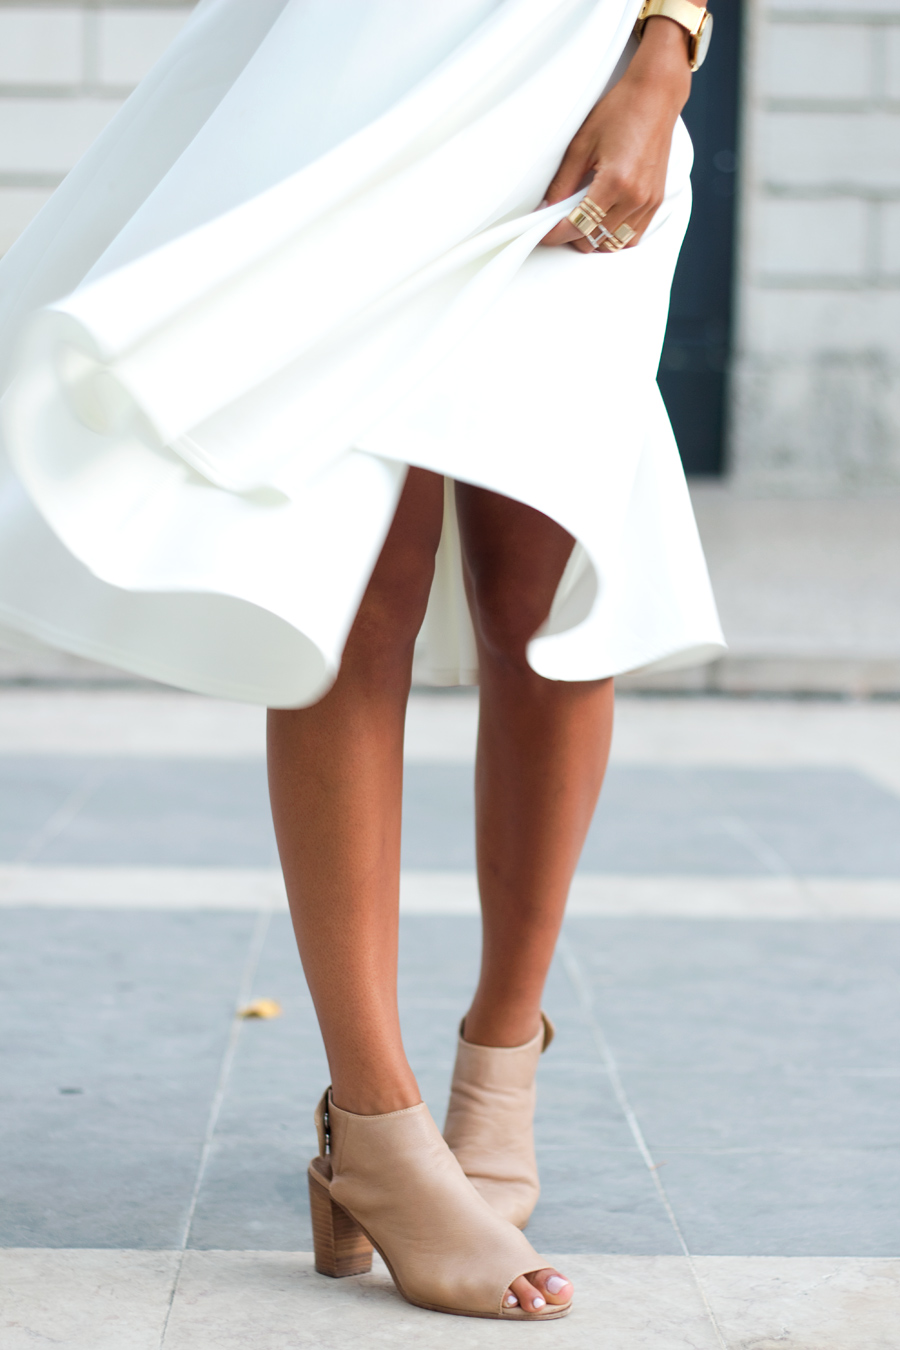 Kayla Seah is wearing a white skirt from ASOS and shoes from Steve Madden